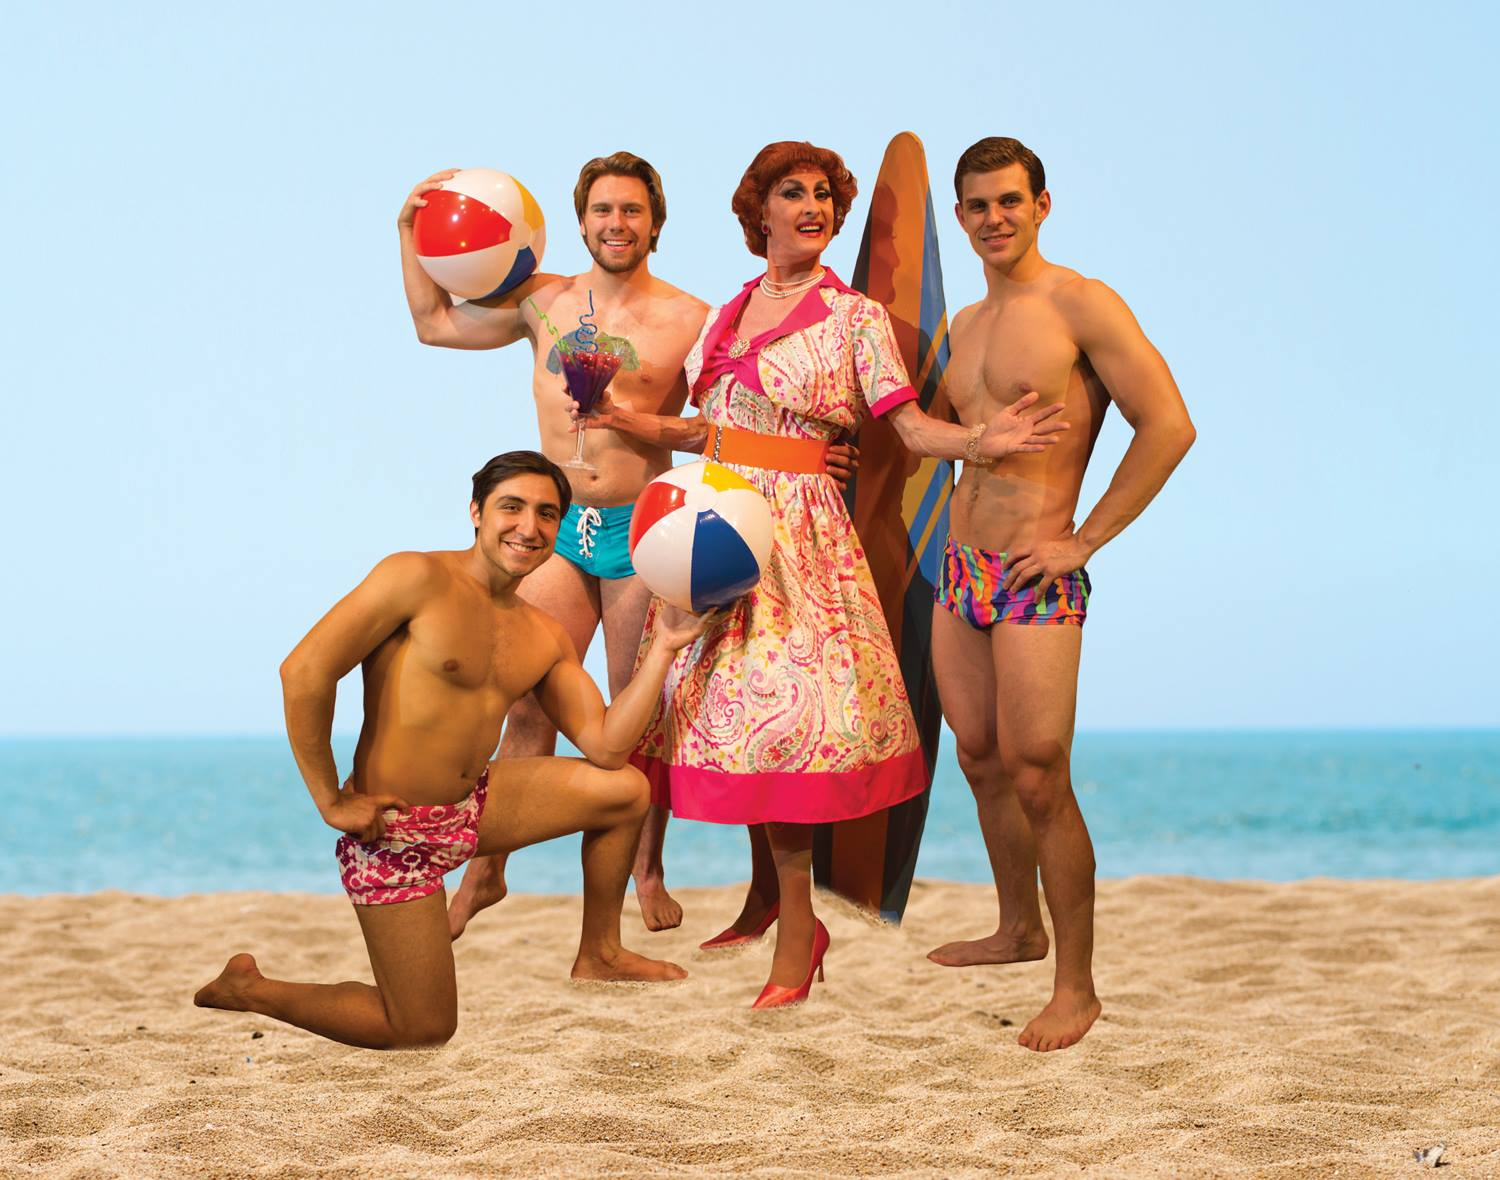 The cast of Psycho Beach Party